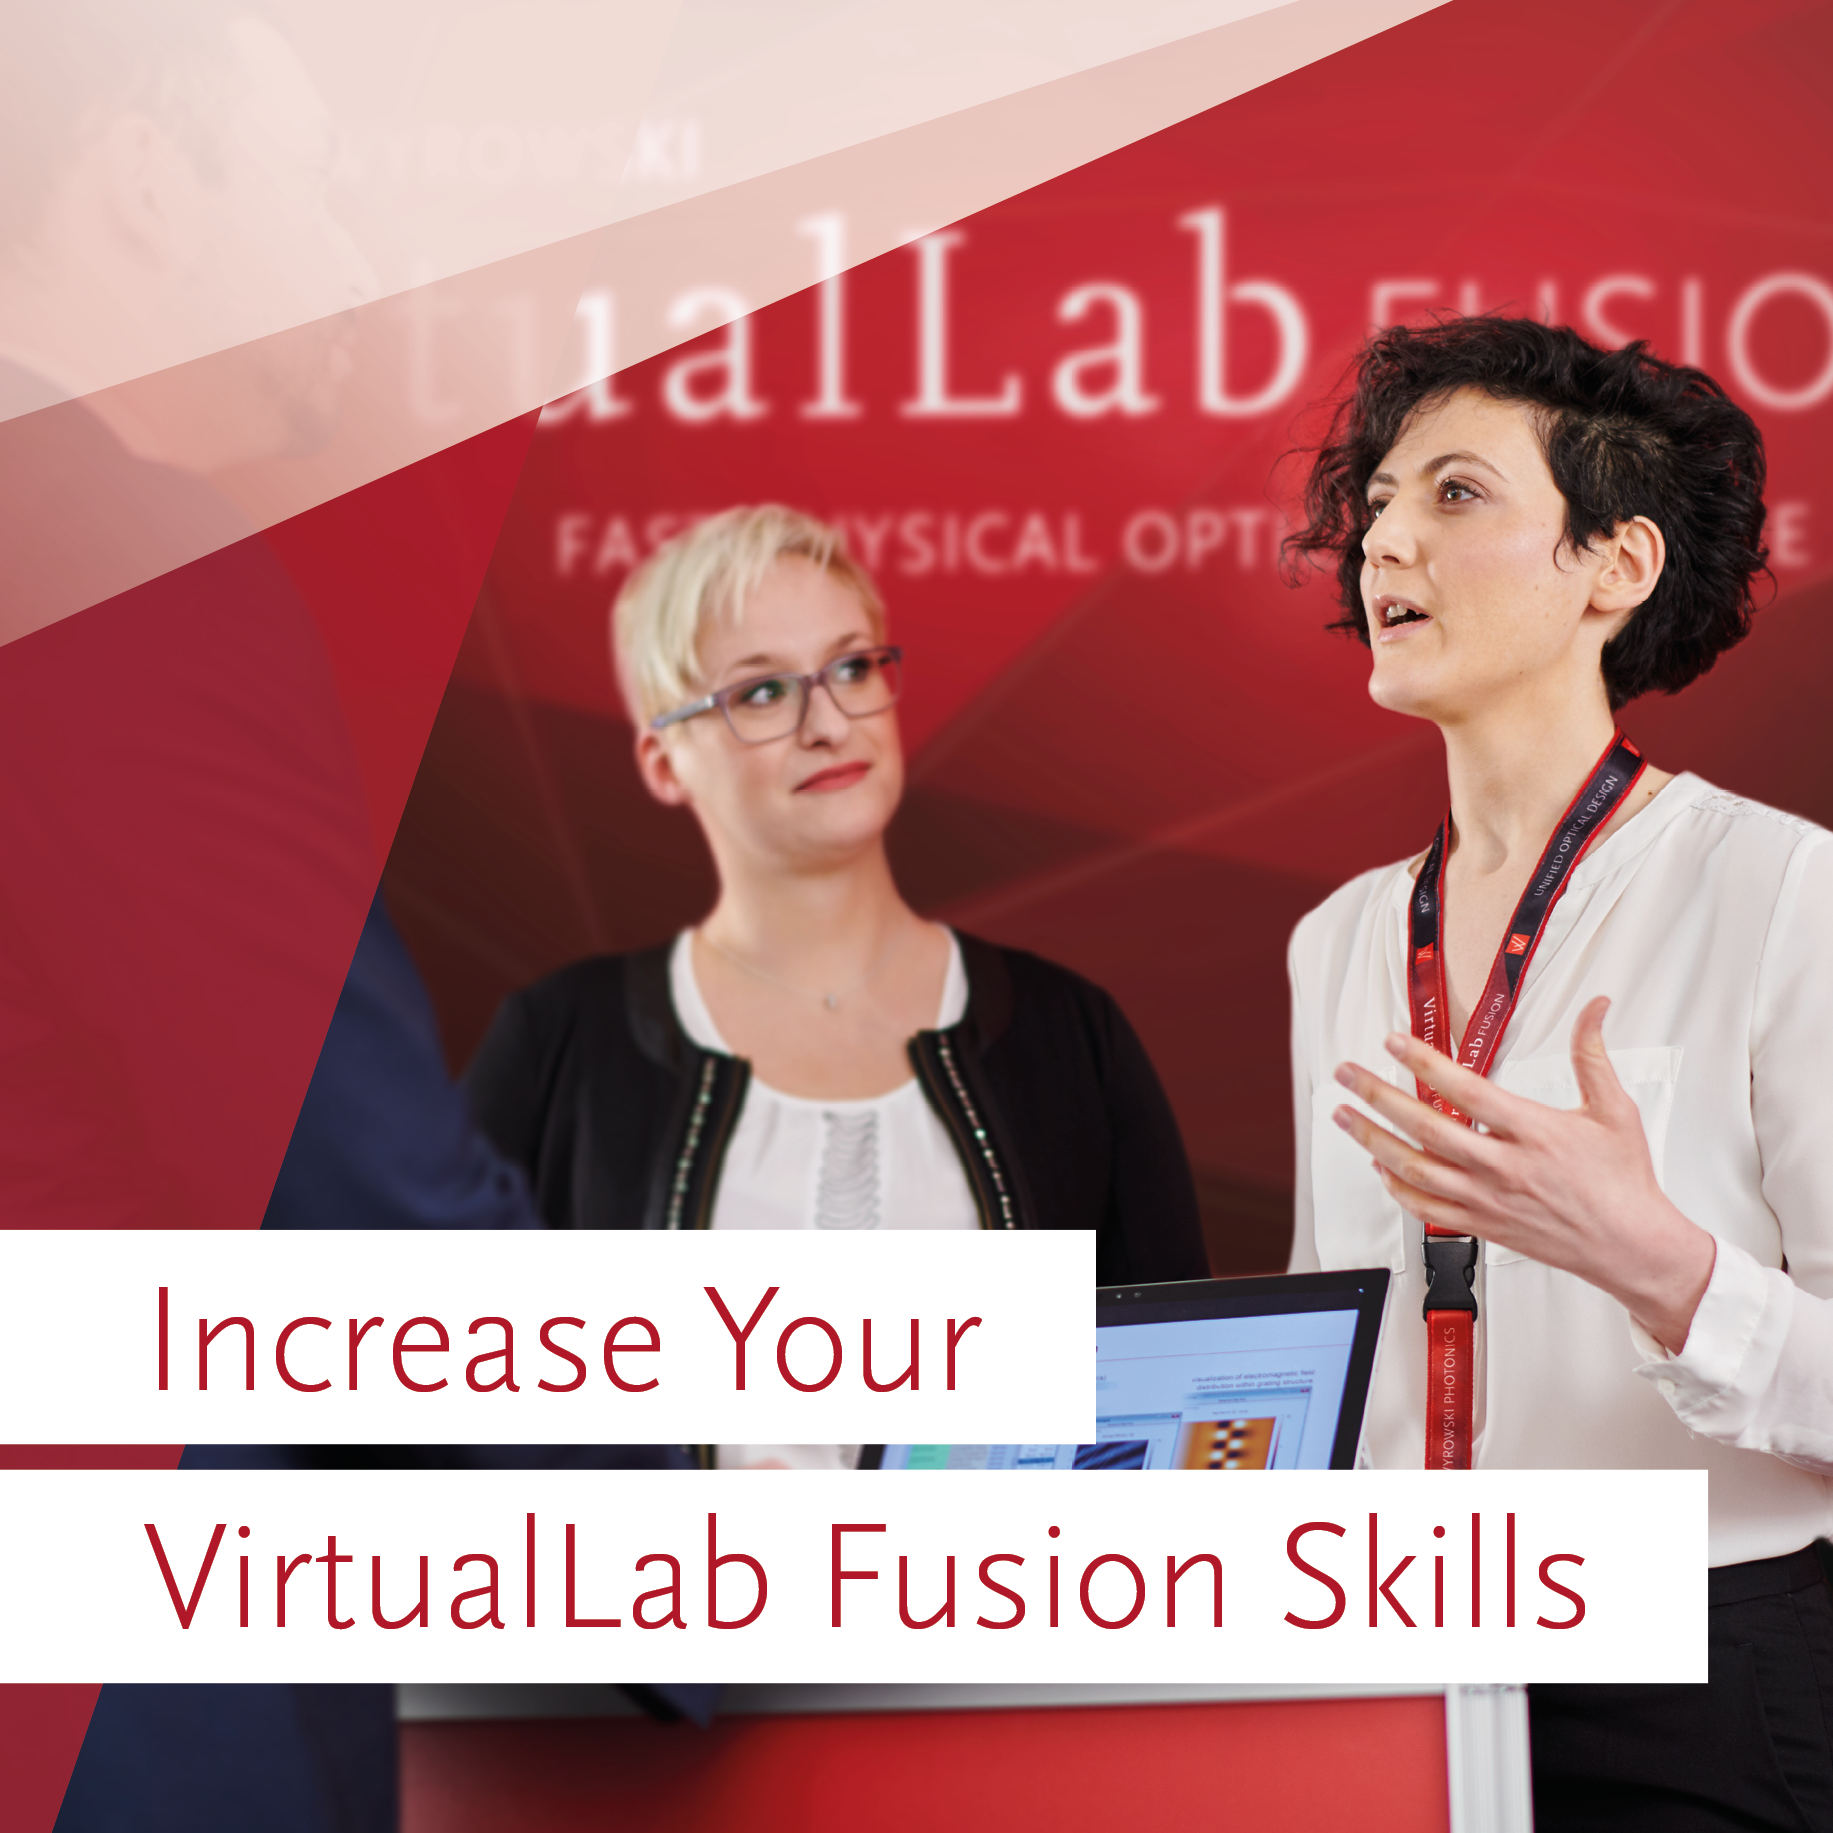 Increase Your VirtualLab Fusion Skills from LightTrans International UG